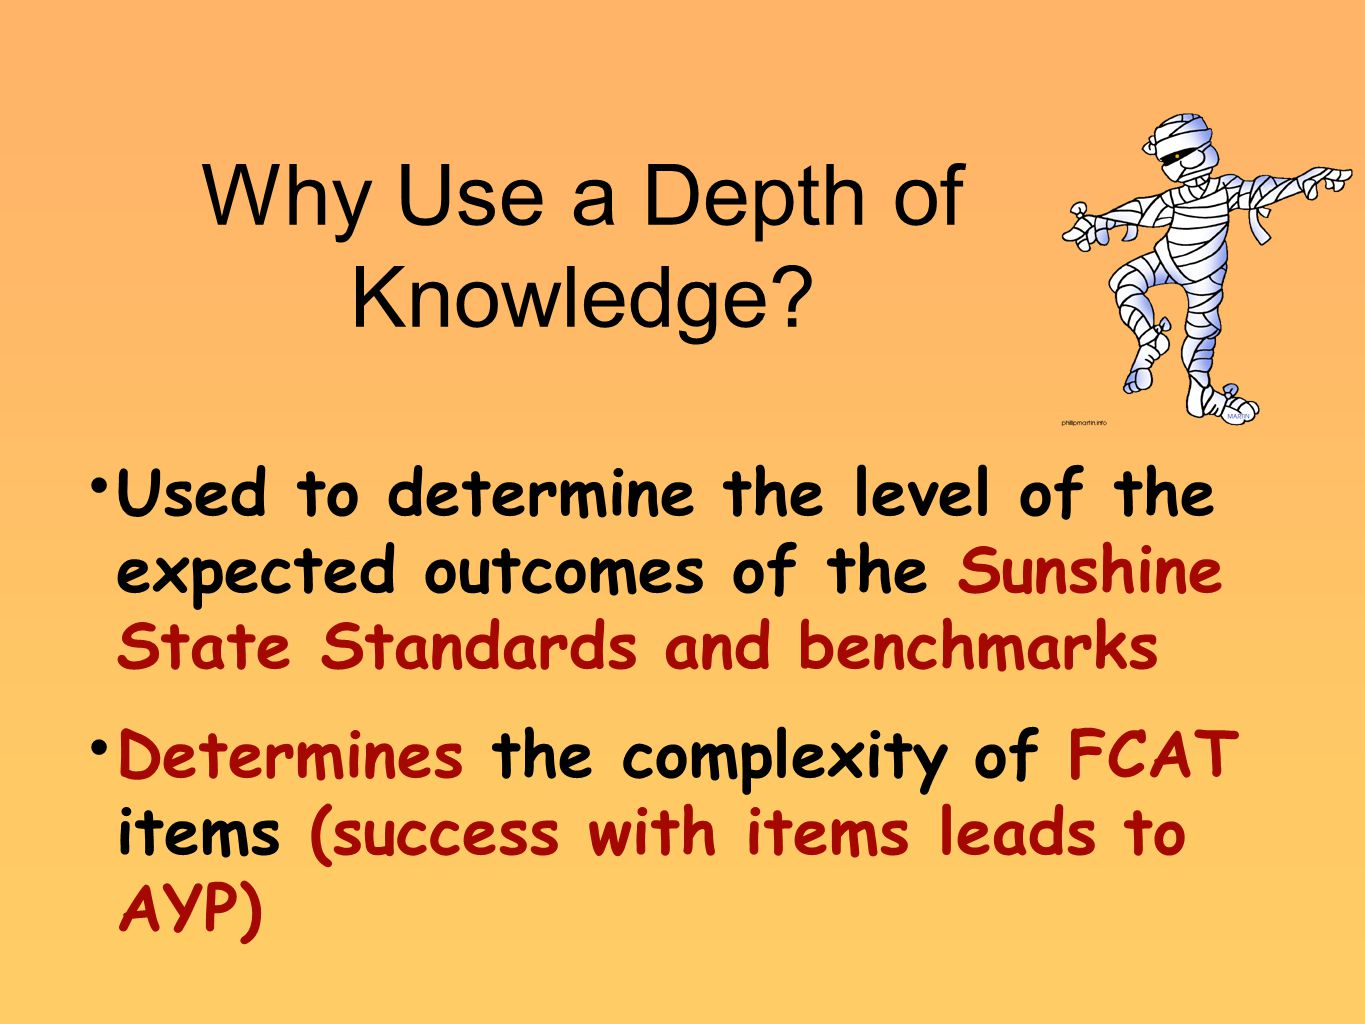 Why Use a Depth of Knowledge